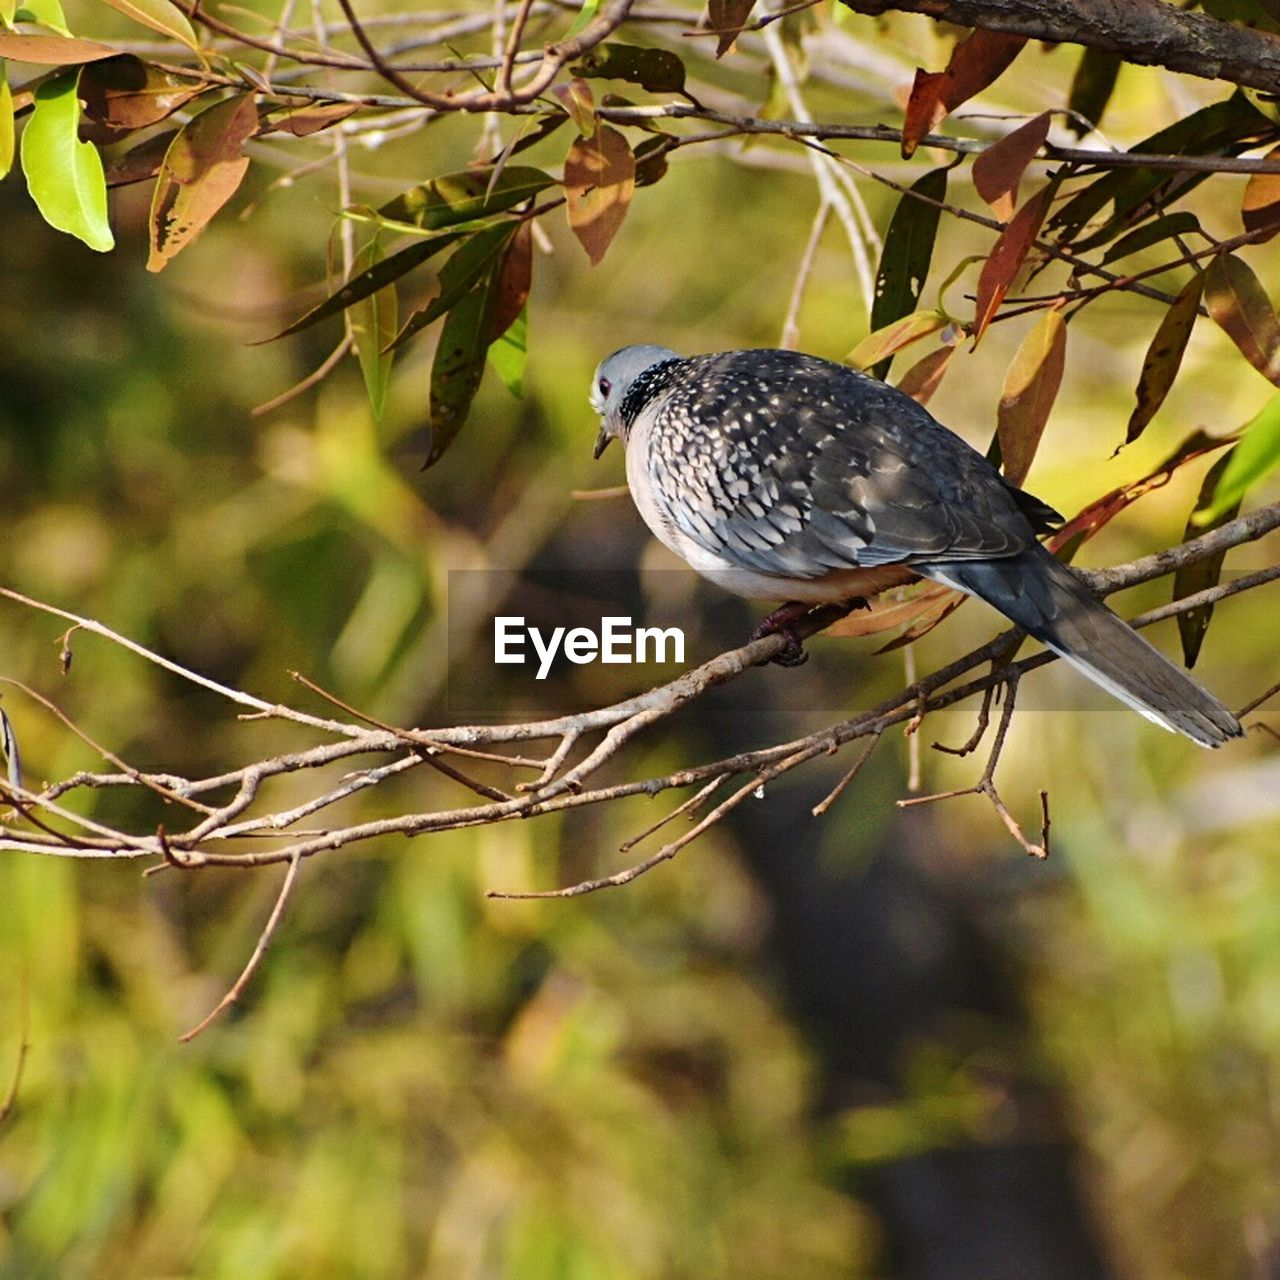 bird, one animal, perching, animals in the wild, animal themes, branch, animal wildlife, no people, focus on foreground, tree, outdoors, day, full length, nature